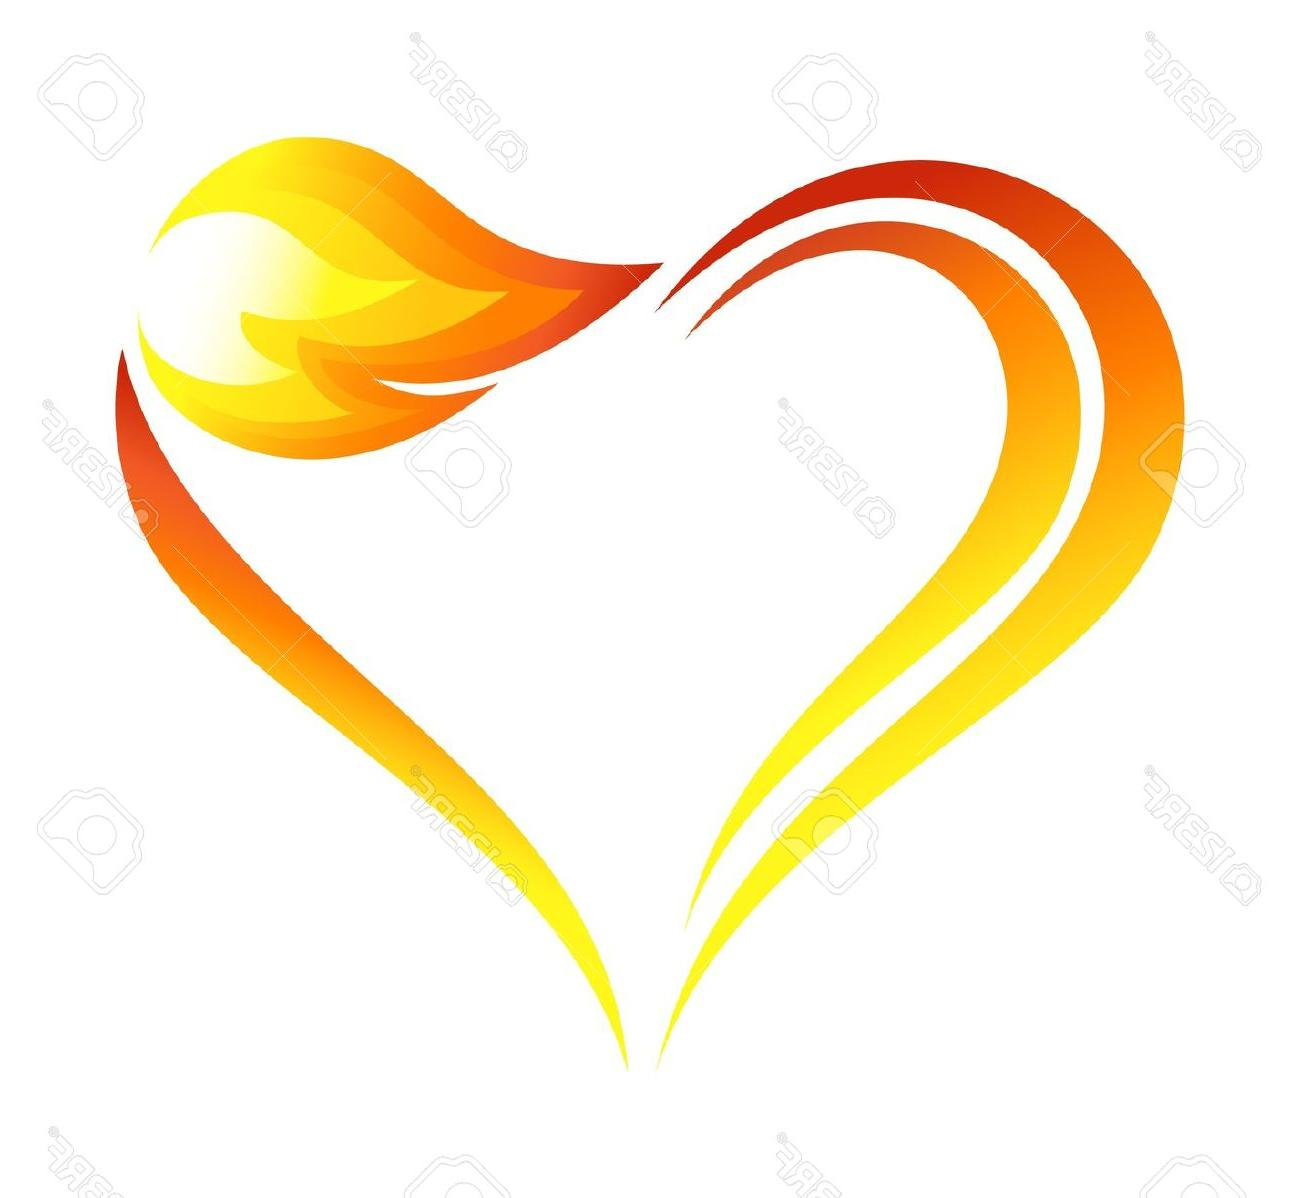 1300x1198 Hd Drawings Of Hearts On Fire Vector Library Free Vector Art